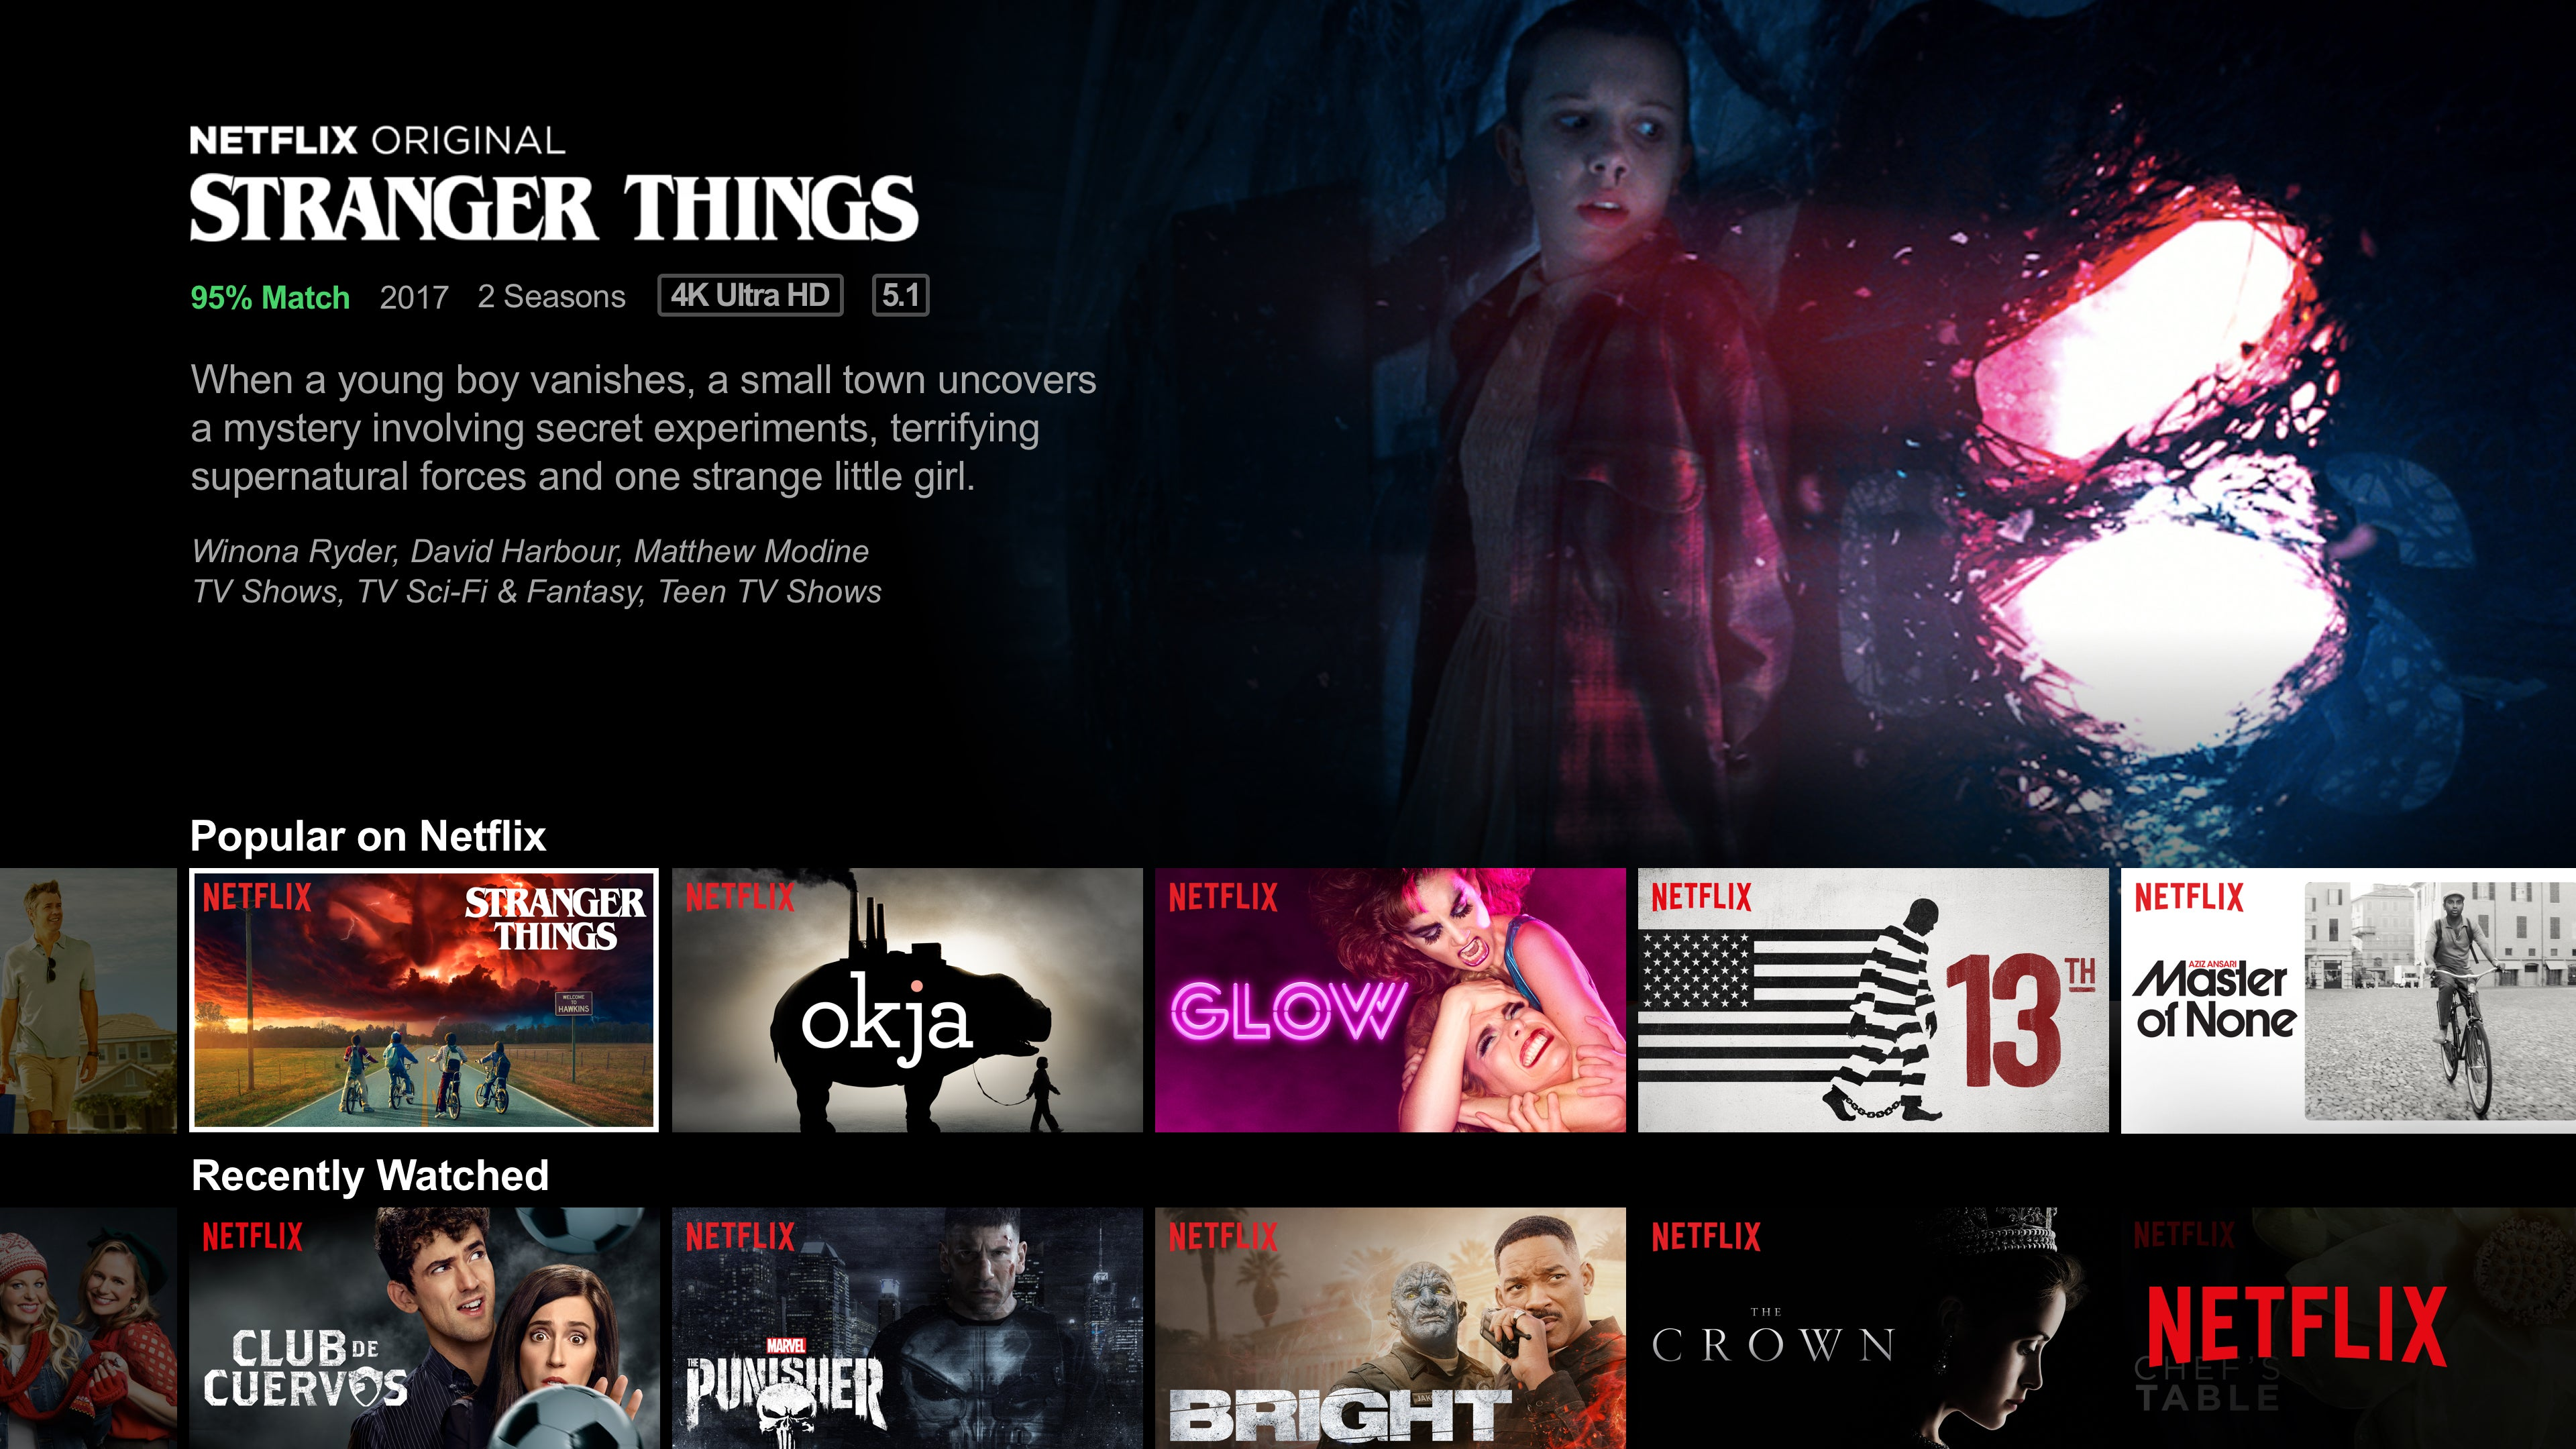 5 Things You Need To Know About Netflix's Earnings Report